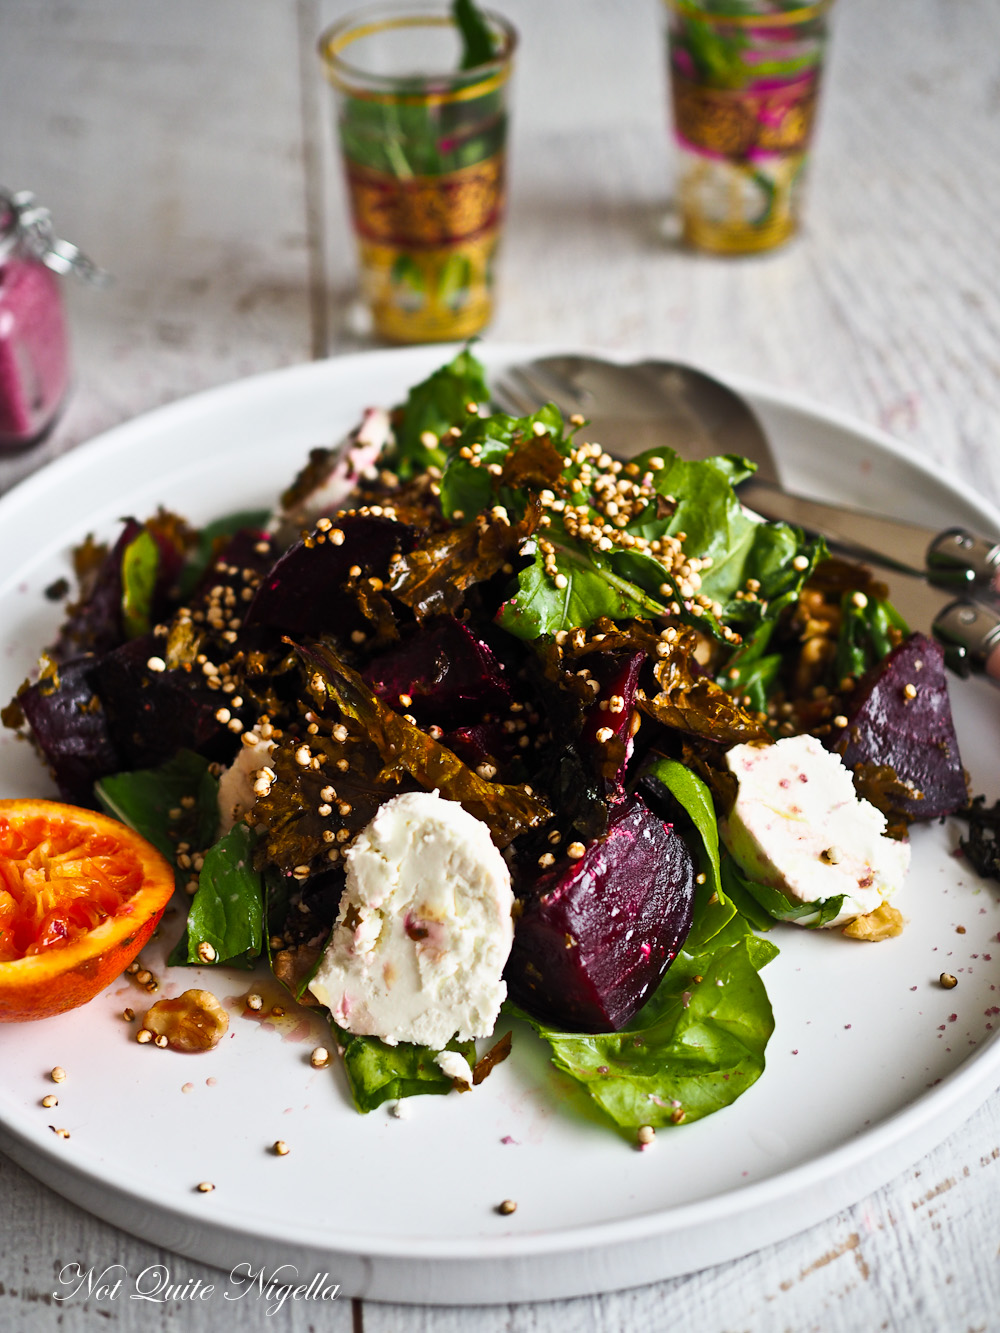 Beetroot Kale Salad